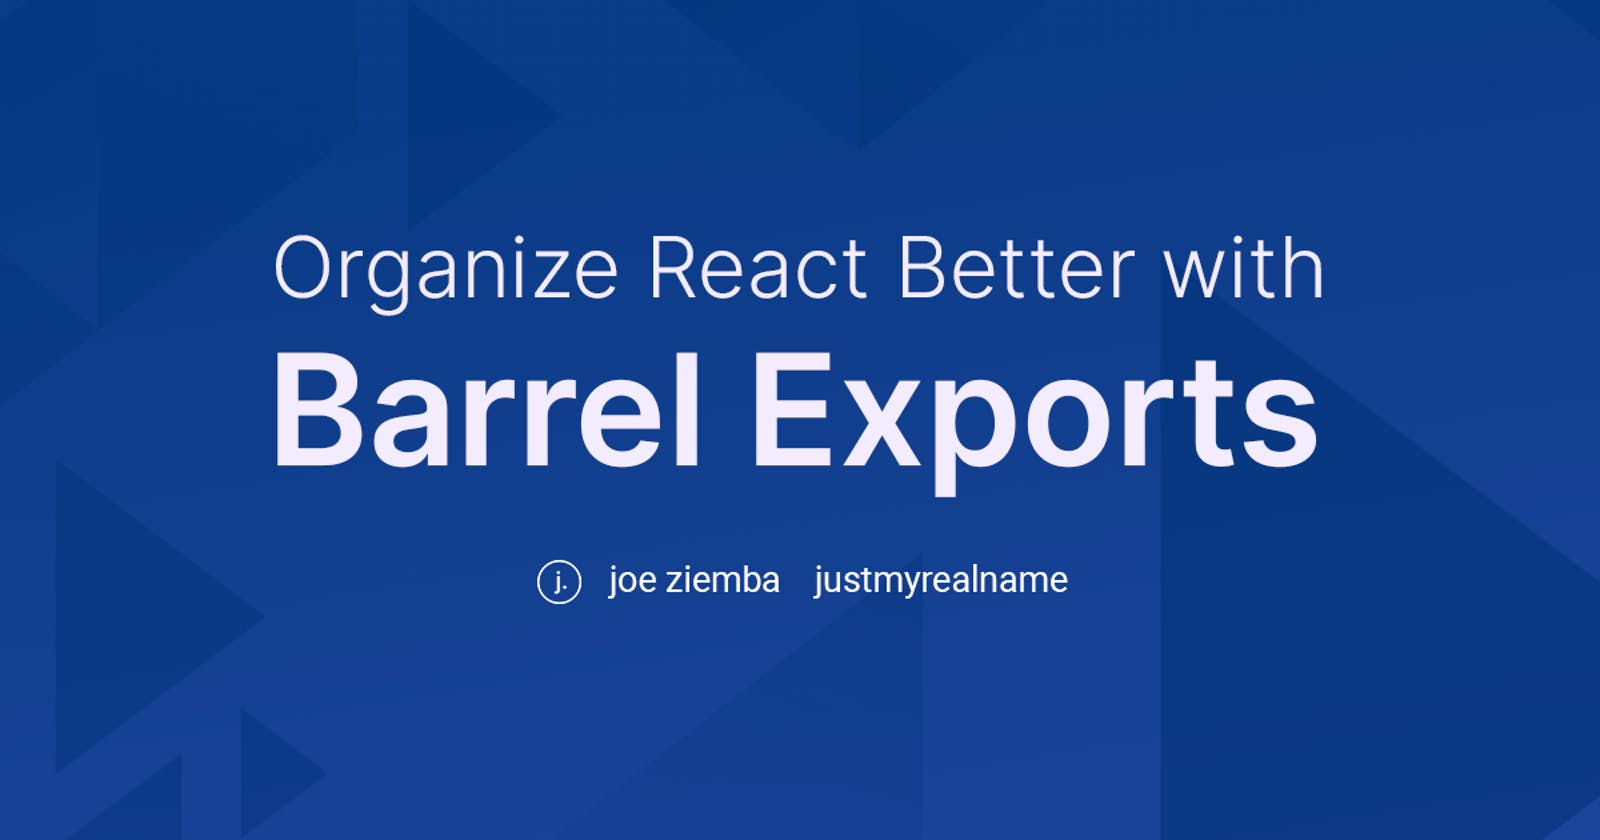 Organize React Components Better with Barrel Exports